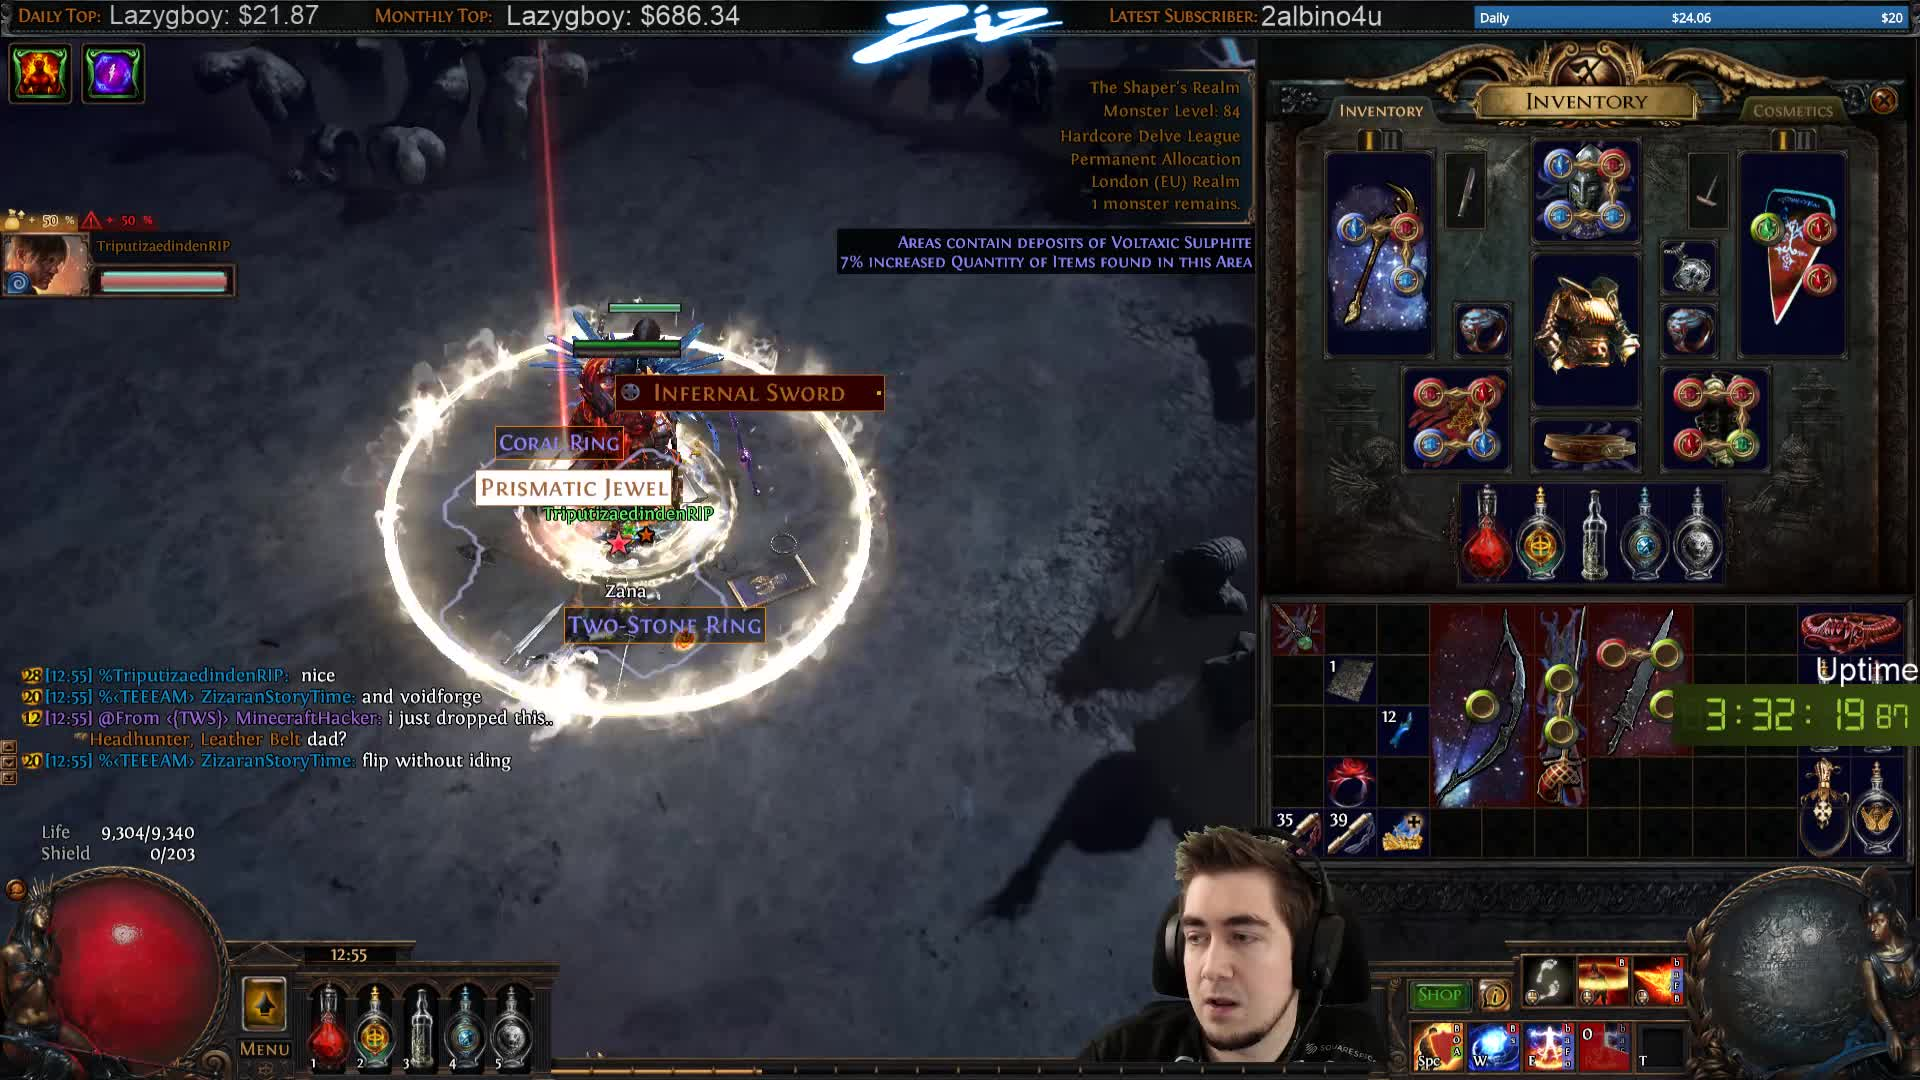 Zizaran - Undisputed best watcher's eye - Twitch